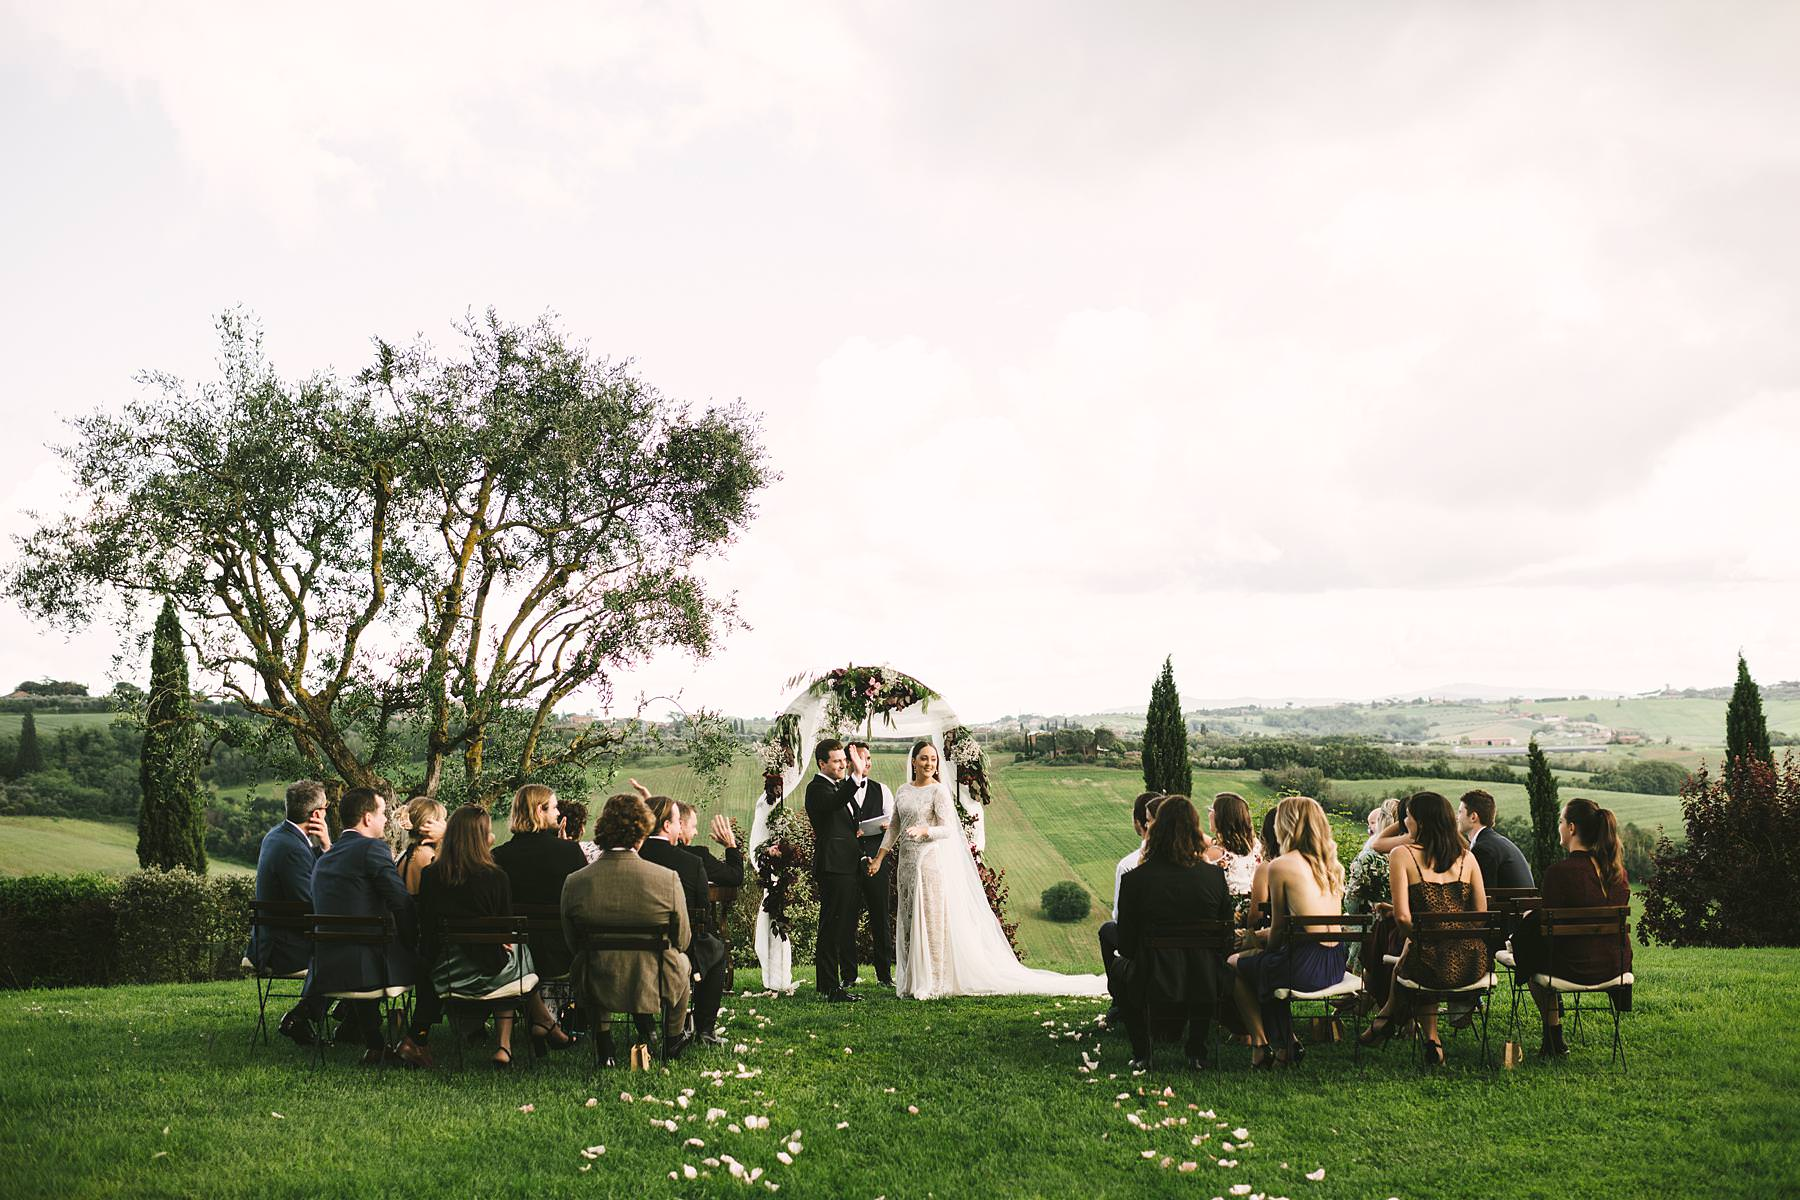 Unforgettable elegant outdoor intimate wedding ceremony in Umbria at incredible historic venue of Villa lÕAntica Posta with gorgeous countryside panoramic view